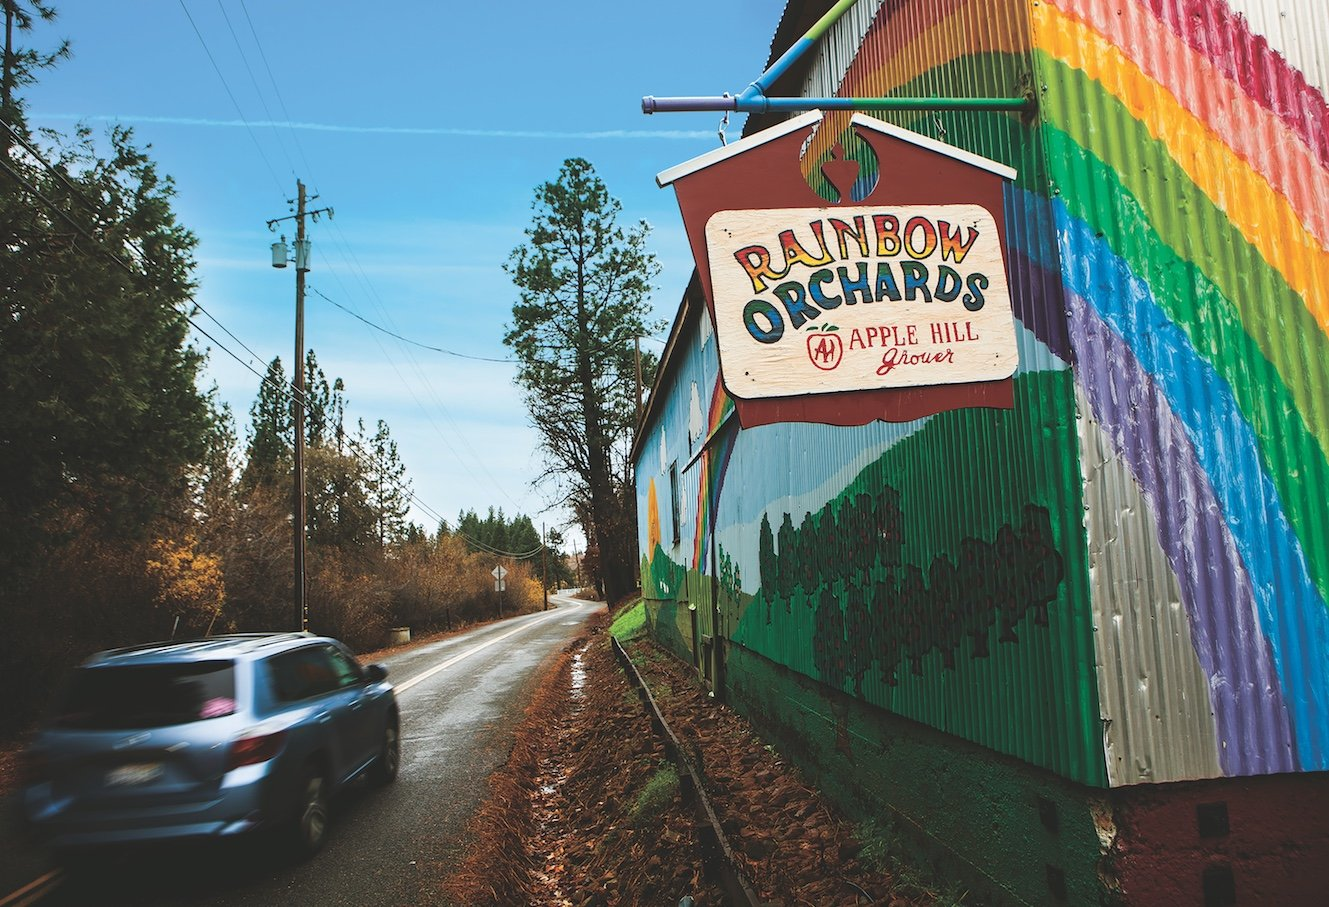 This cider doughnut house rules: Start your day right with a visit to Rainbow Orchards. (Photo by Max Whittaker)